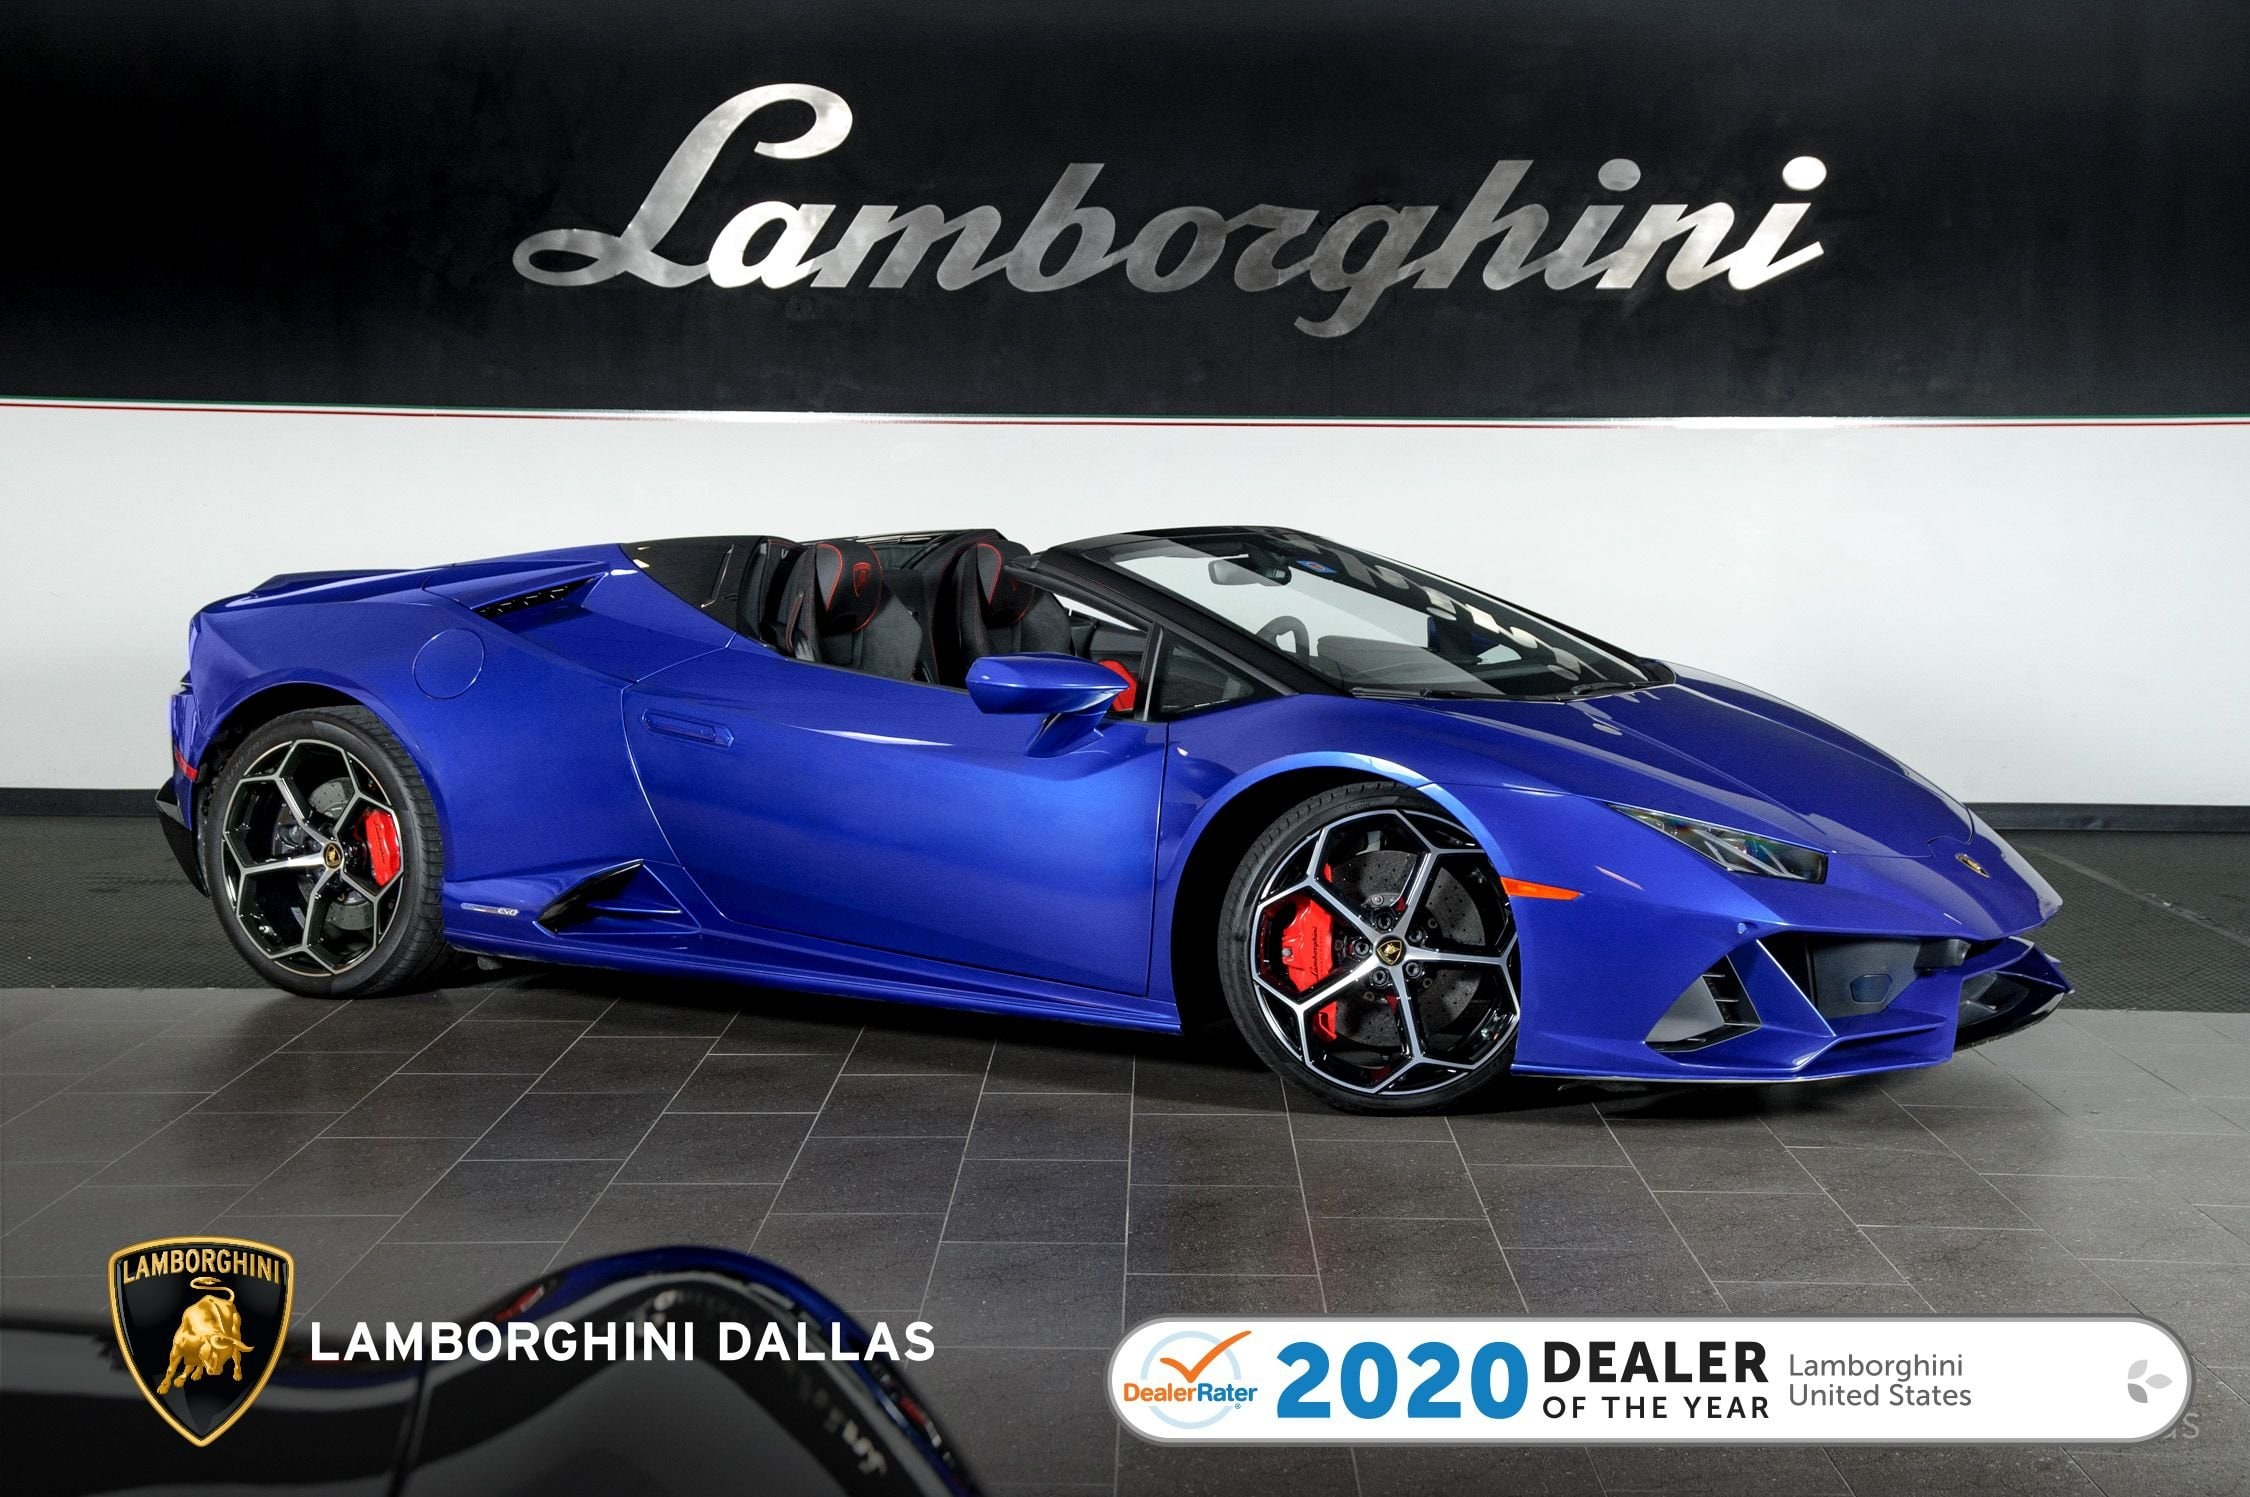 used 2020 Lamborghini Huracan EVO Spyder car, priced at $279,999